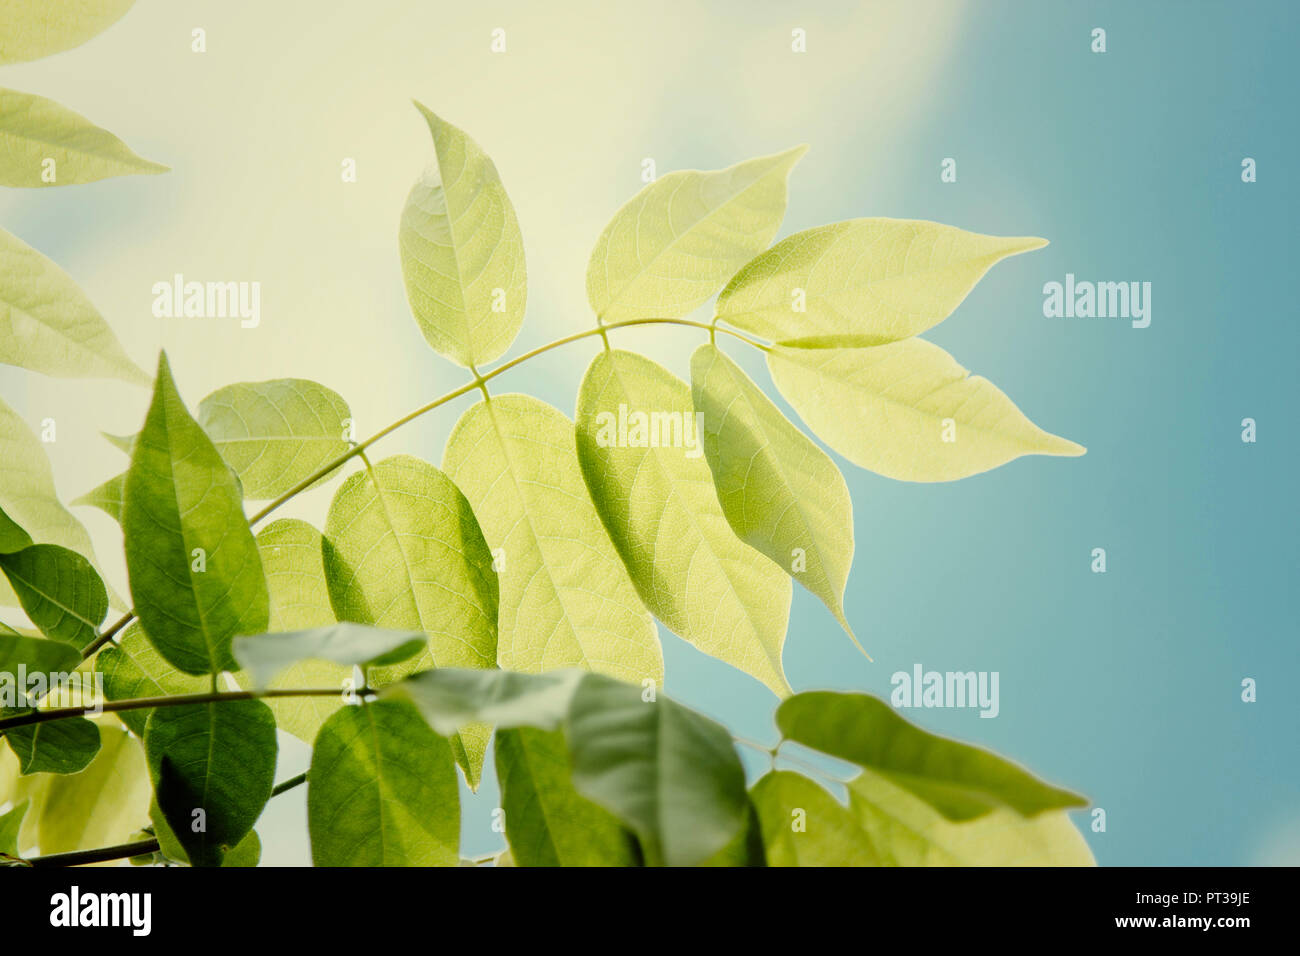 Wisteria And Leaves Stock Photos Wisteria And Leaves Stock